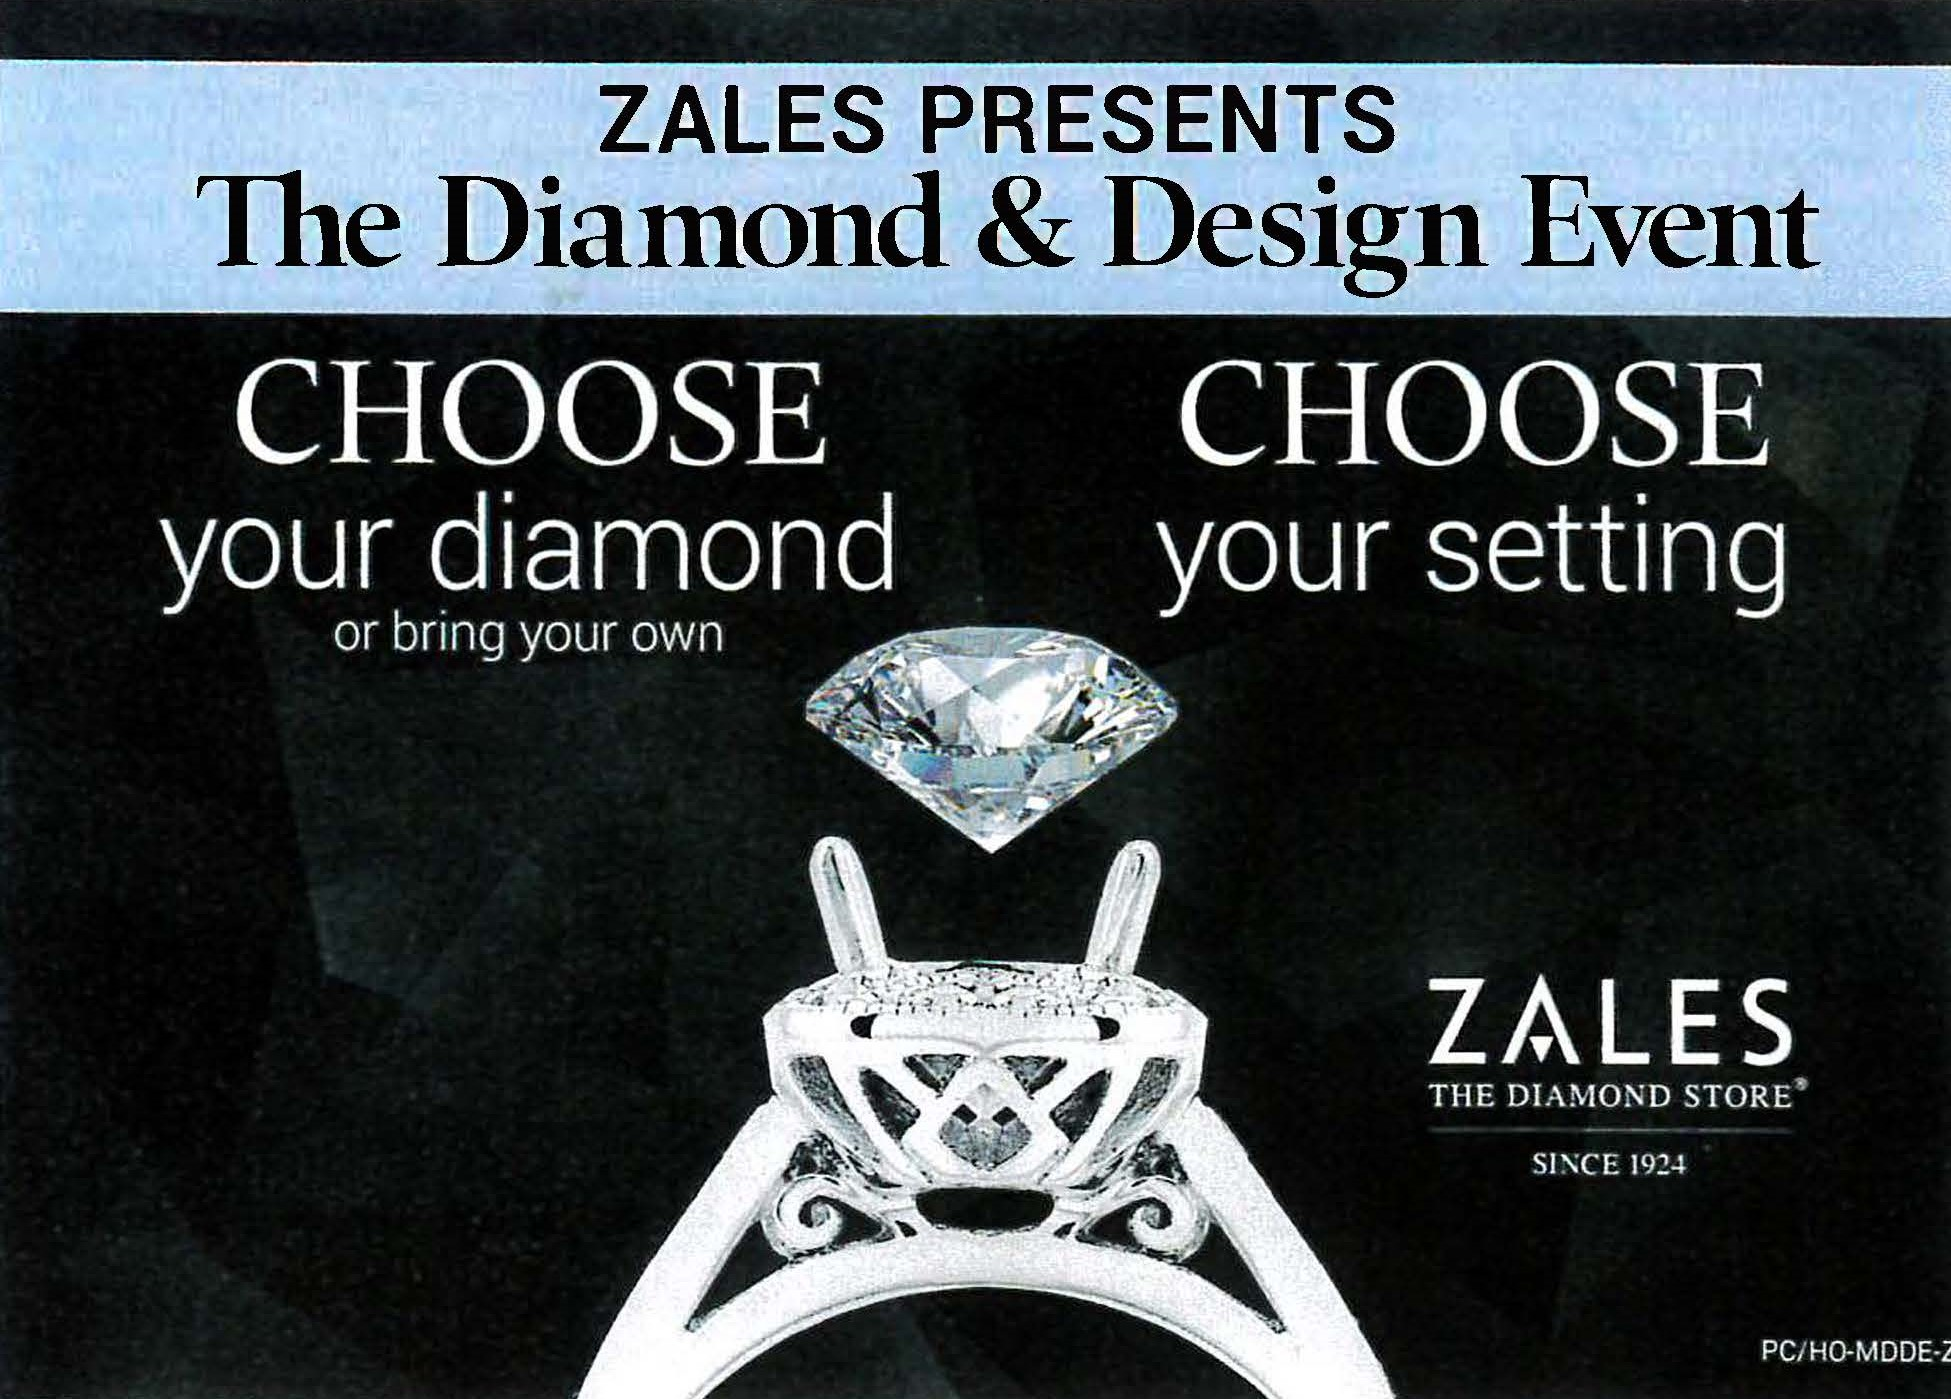 The Diamond & Design Event from Zales Jewelers